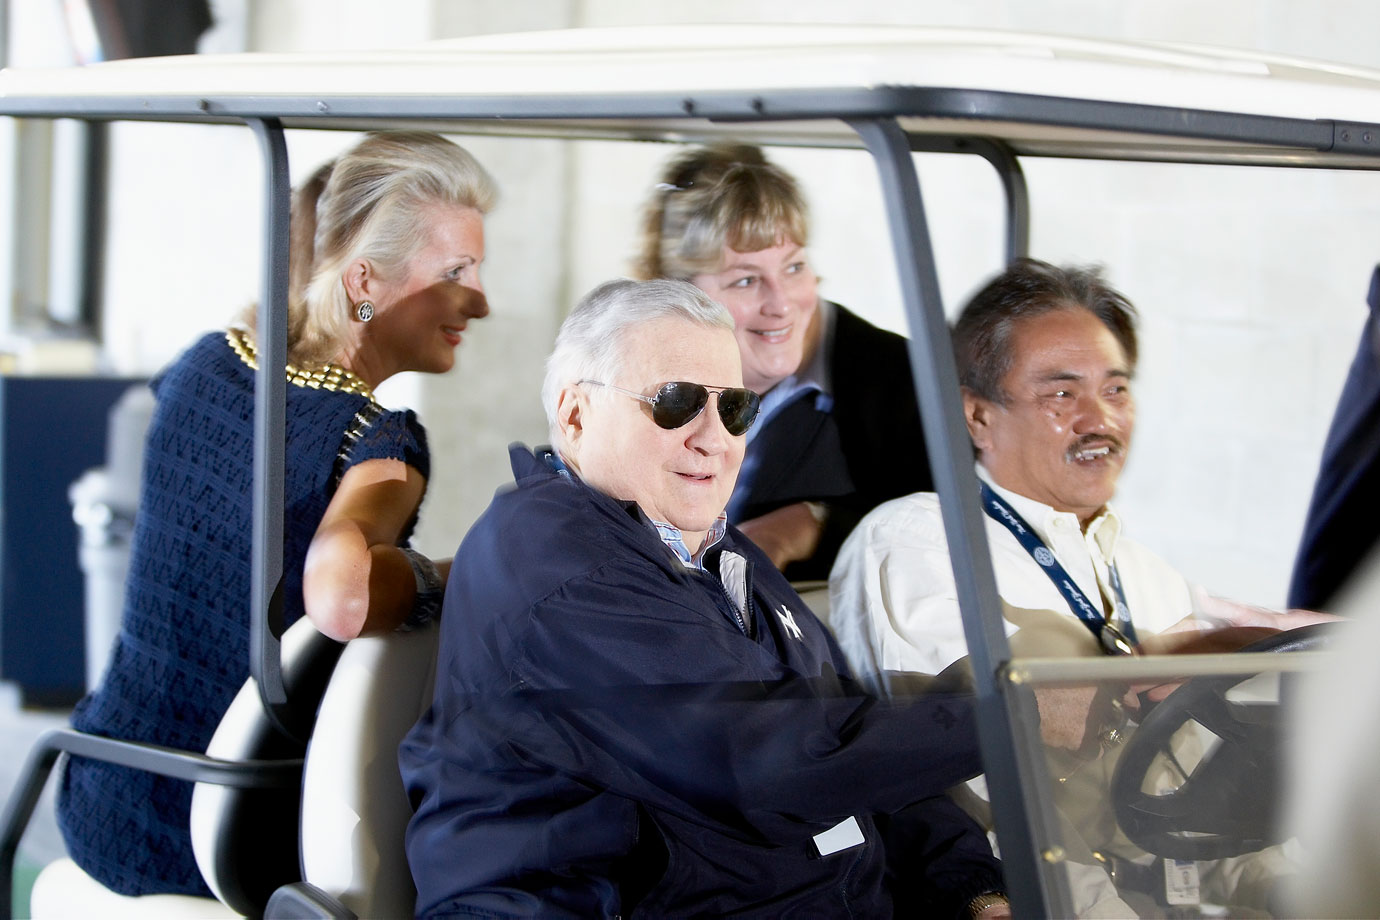 George Steinbrenner smiles while riding in a golf cart during a New York Yankees spring training game against the Tampa Bay Rays on Feb. 26, 2009 at Steinbrenner Field in Tampa, Fla.